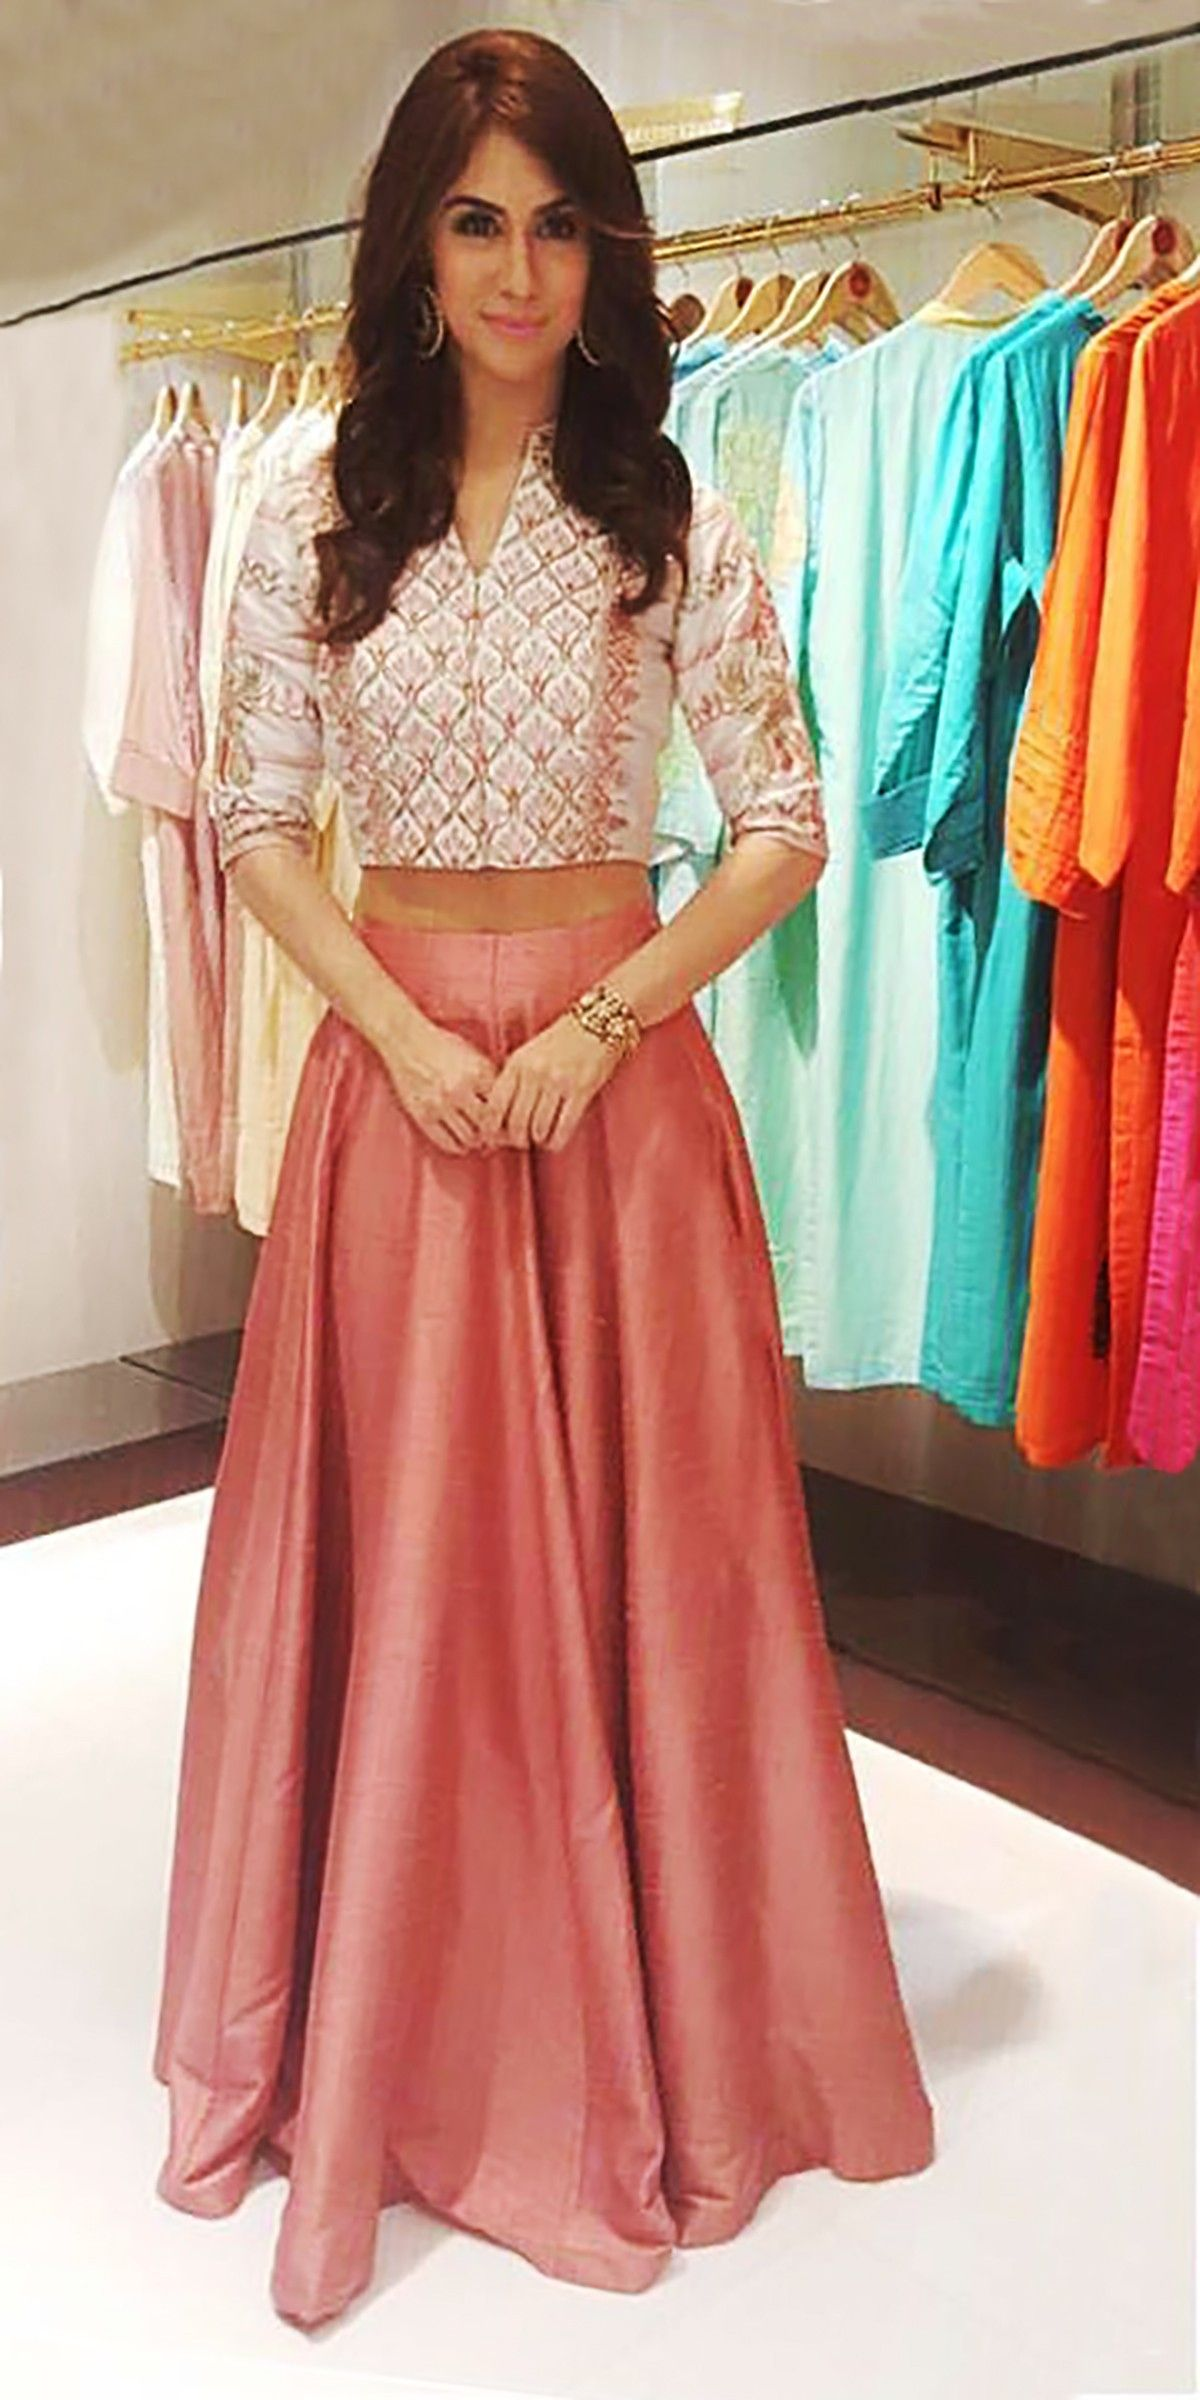 c5d0c1c63aa53 Featuring a crop top and skirt in shades of blush. To wear it on an elegant  evening out